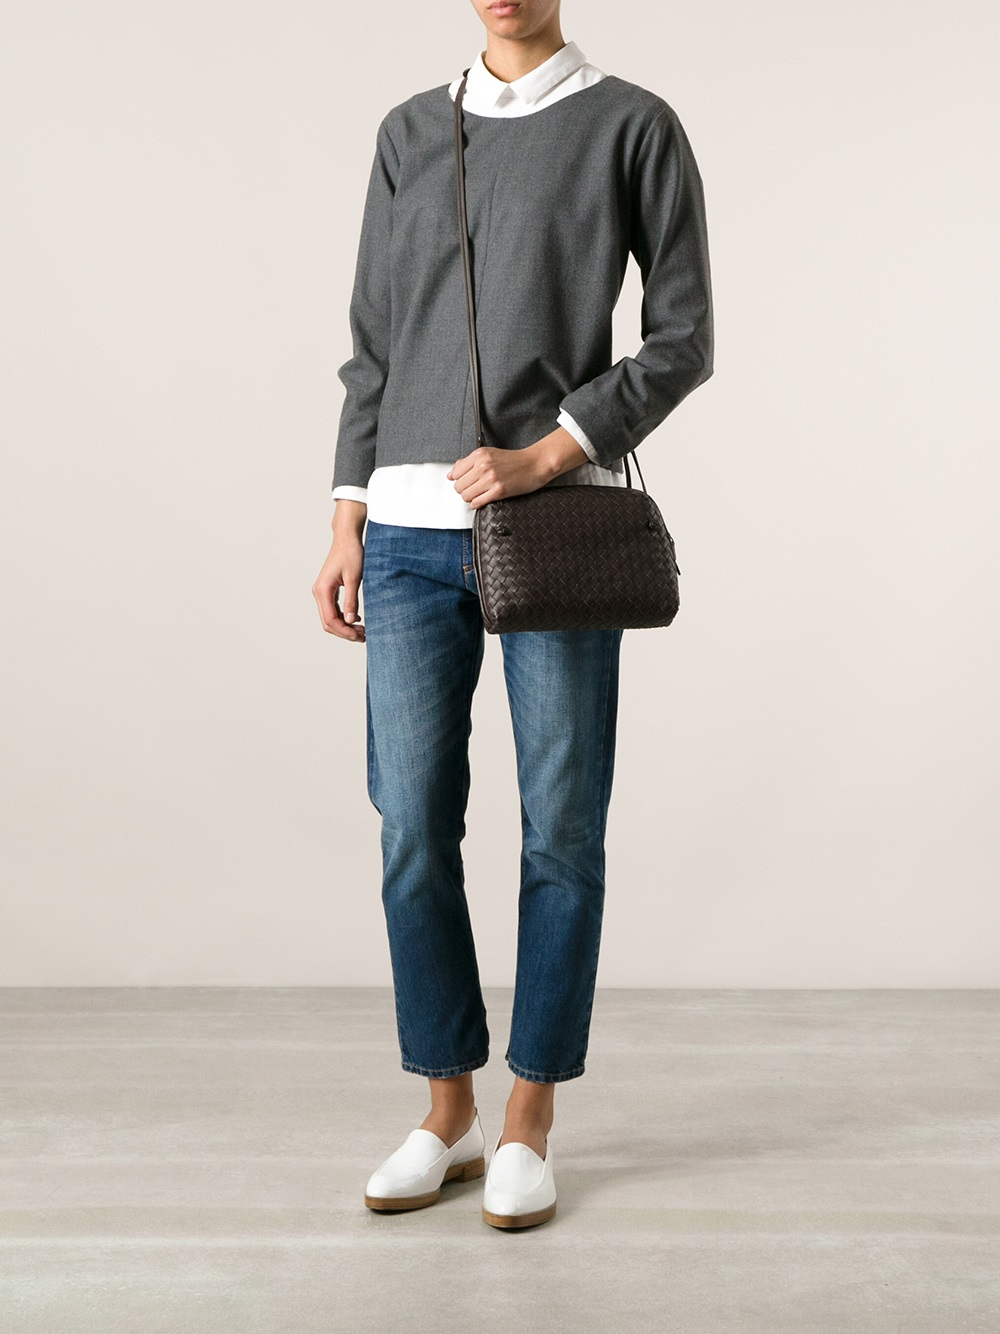 the best purse - bottega veneta intrecciato crossbody bag, bottega veneta wallet sale